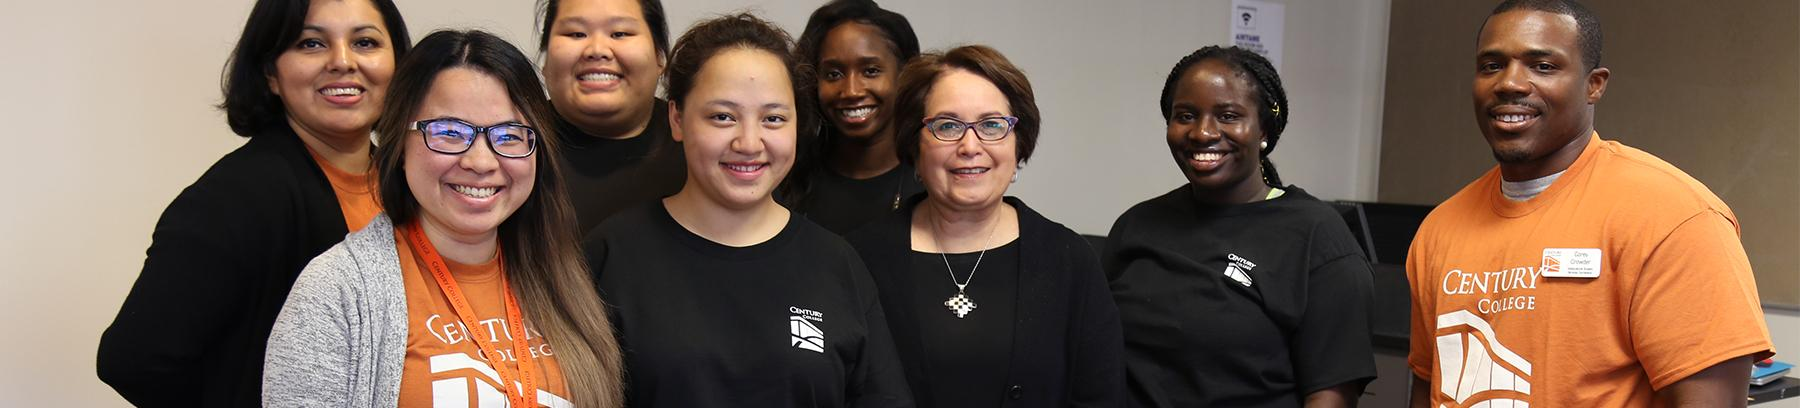 Group image of the Multicultural Center staff.